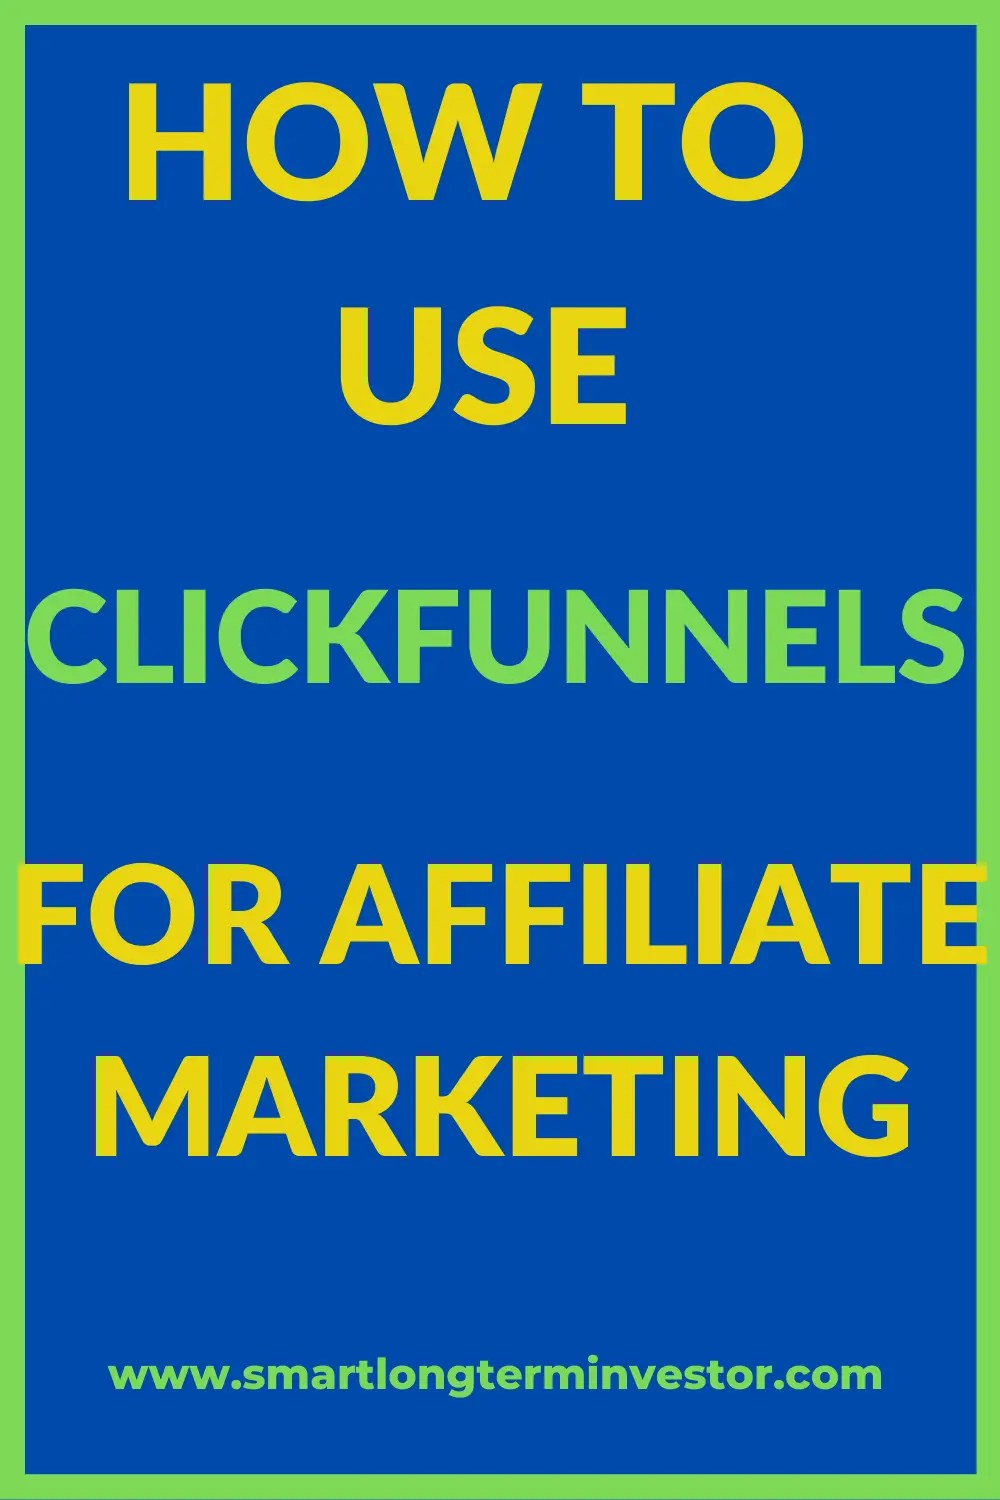 How To Use ClickFunnels For Affiliate Marketing: Step-By-Step Guide